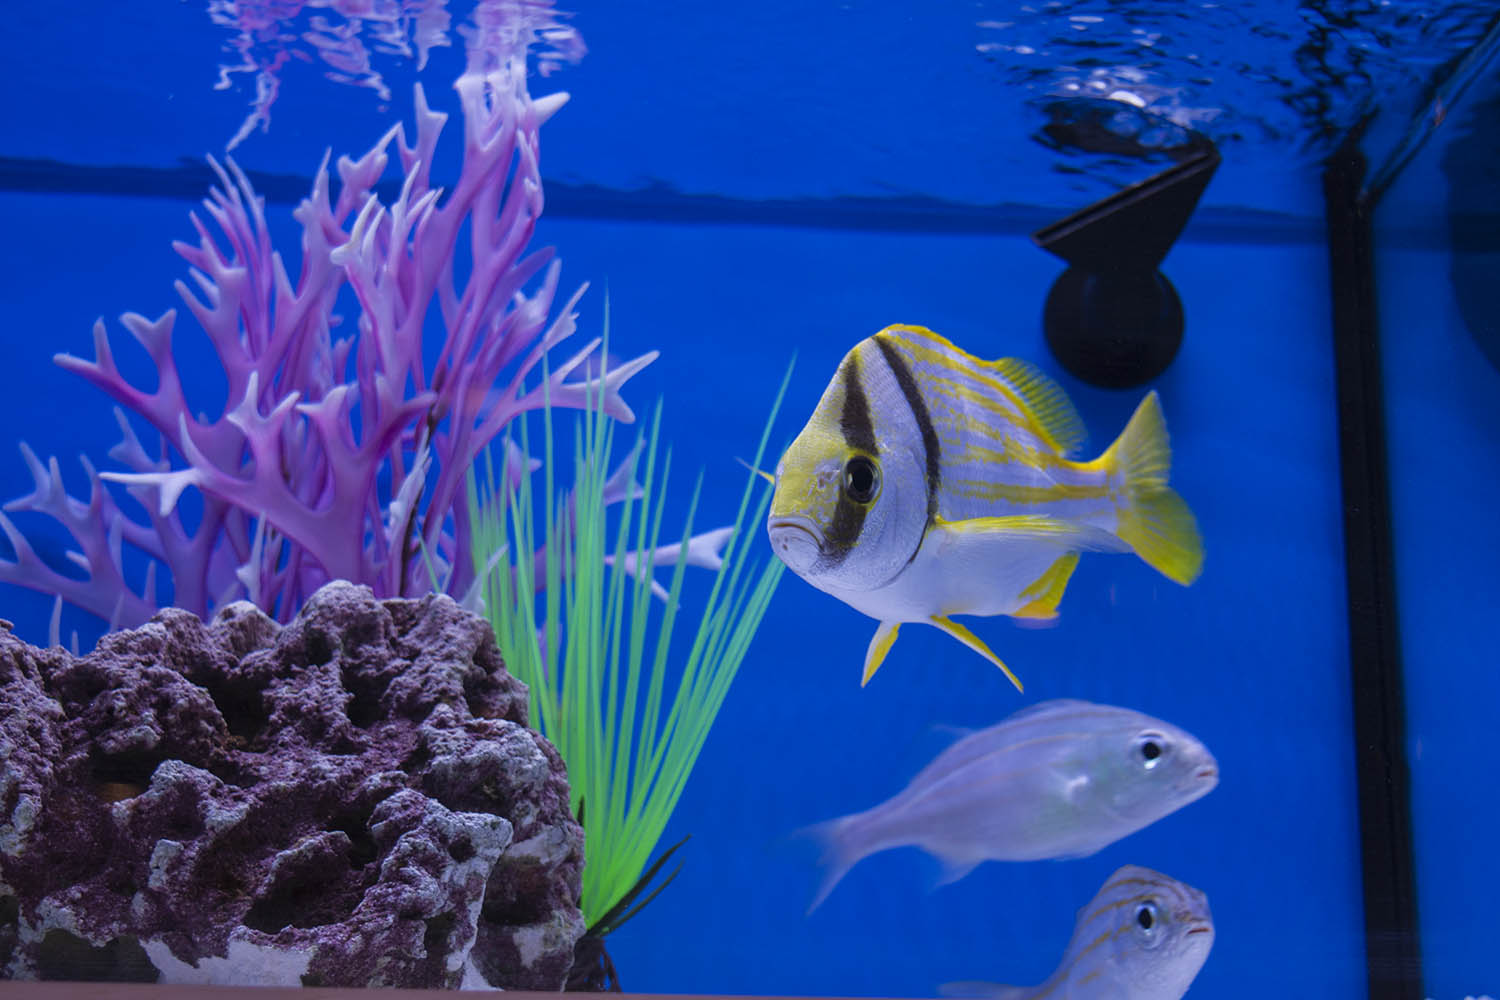 Captive bred Porkfish (Anisotremus virginicus) and Grunts from Fisheye Aquaculture. Both of these species were worked on by Rising Tide and then brought into commercial production